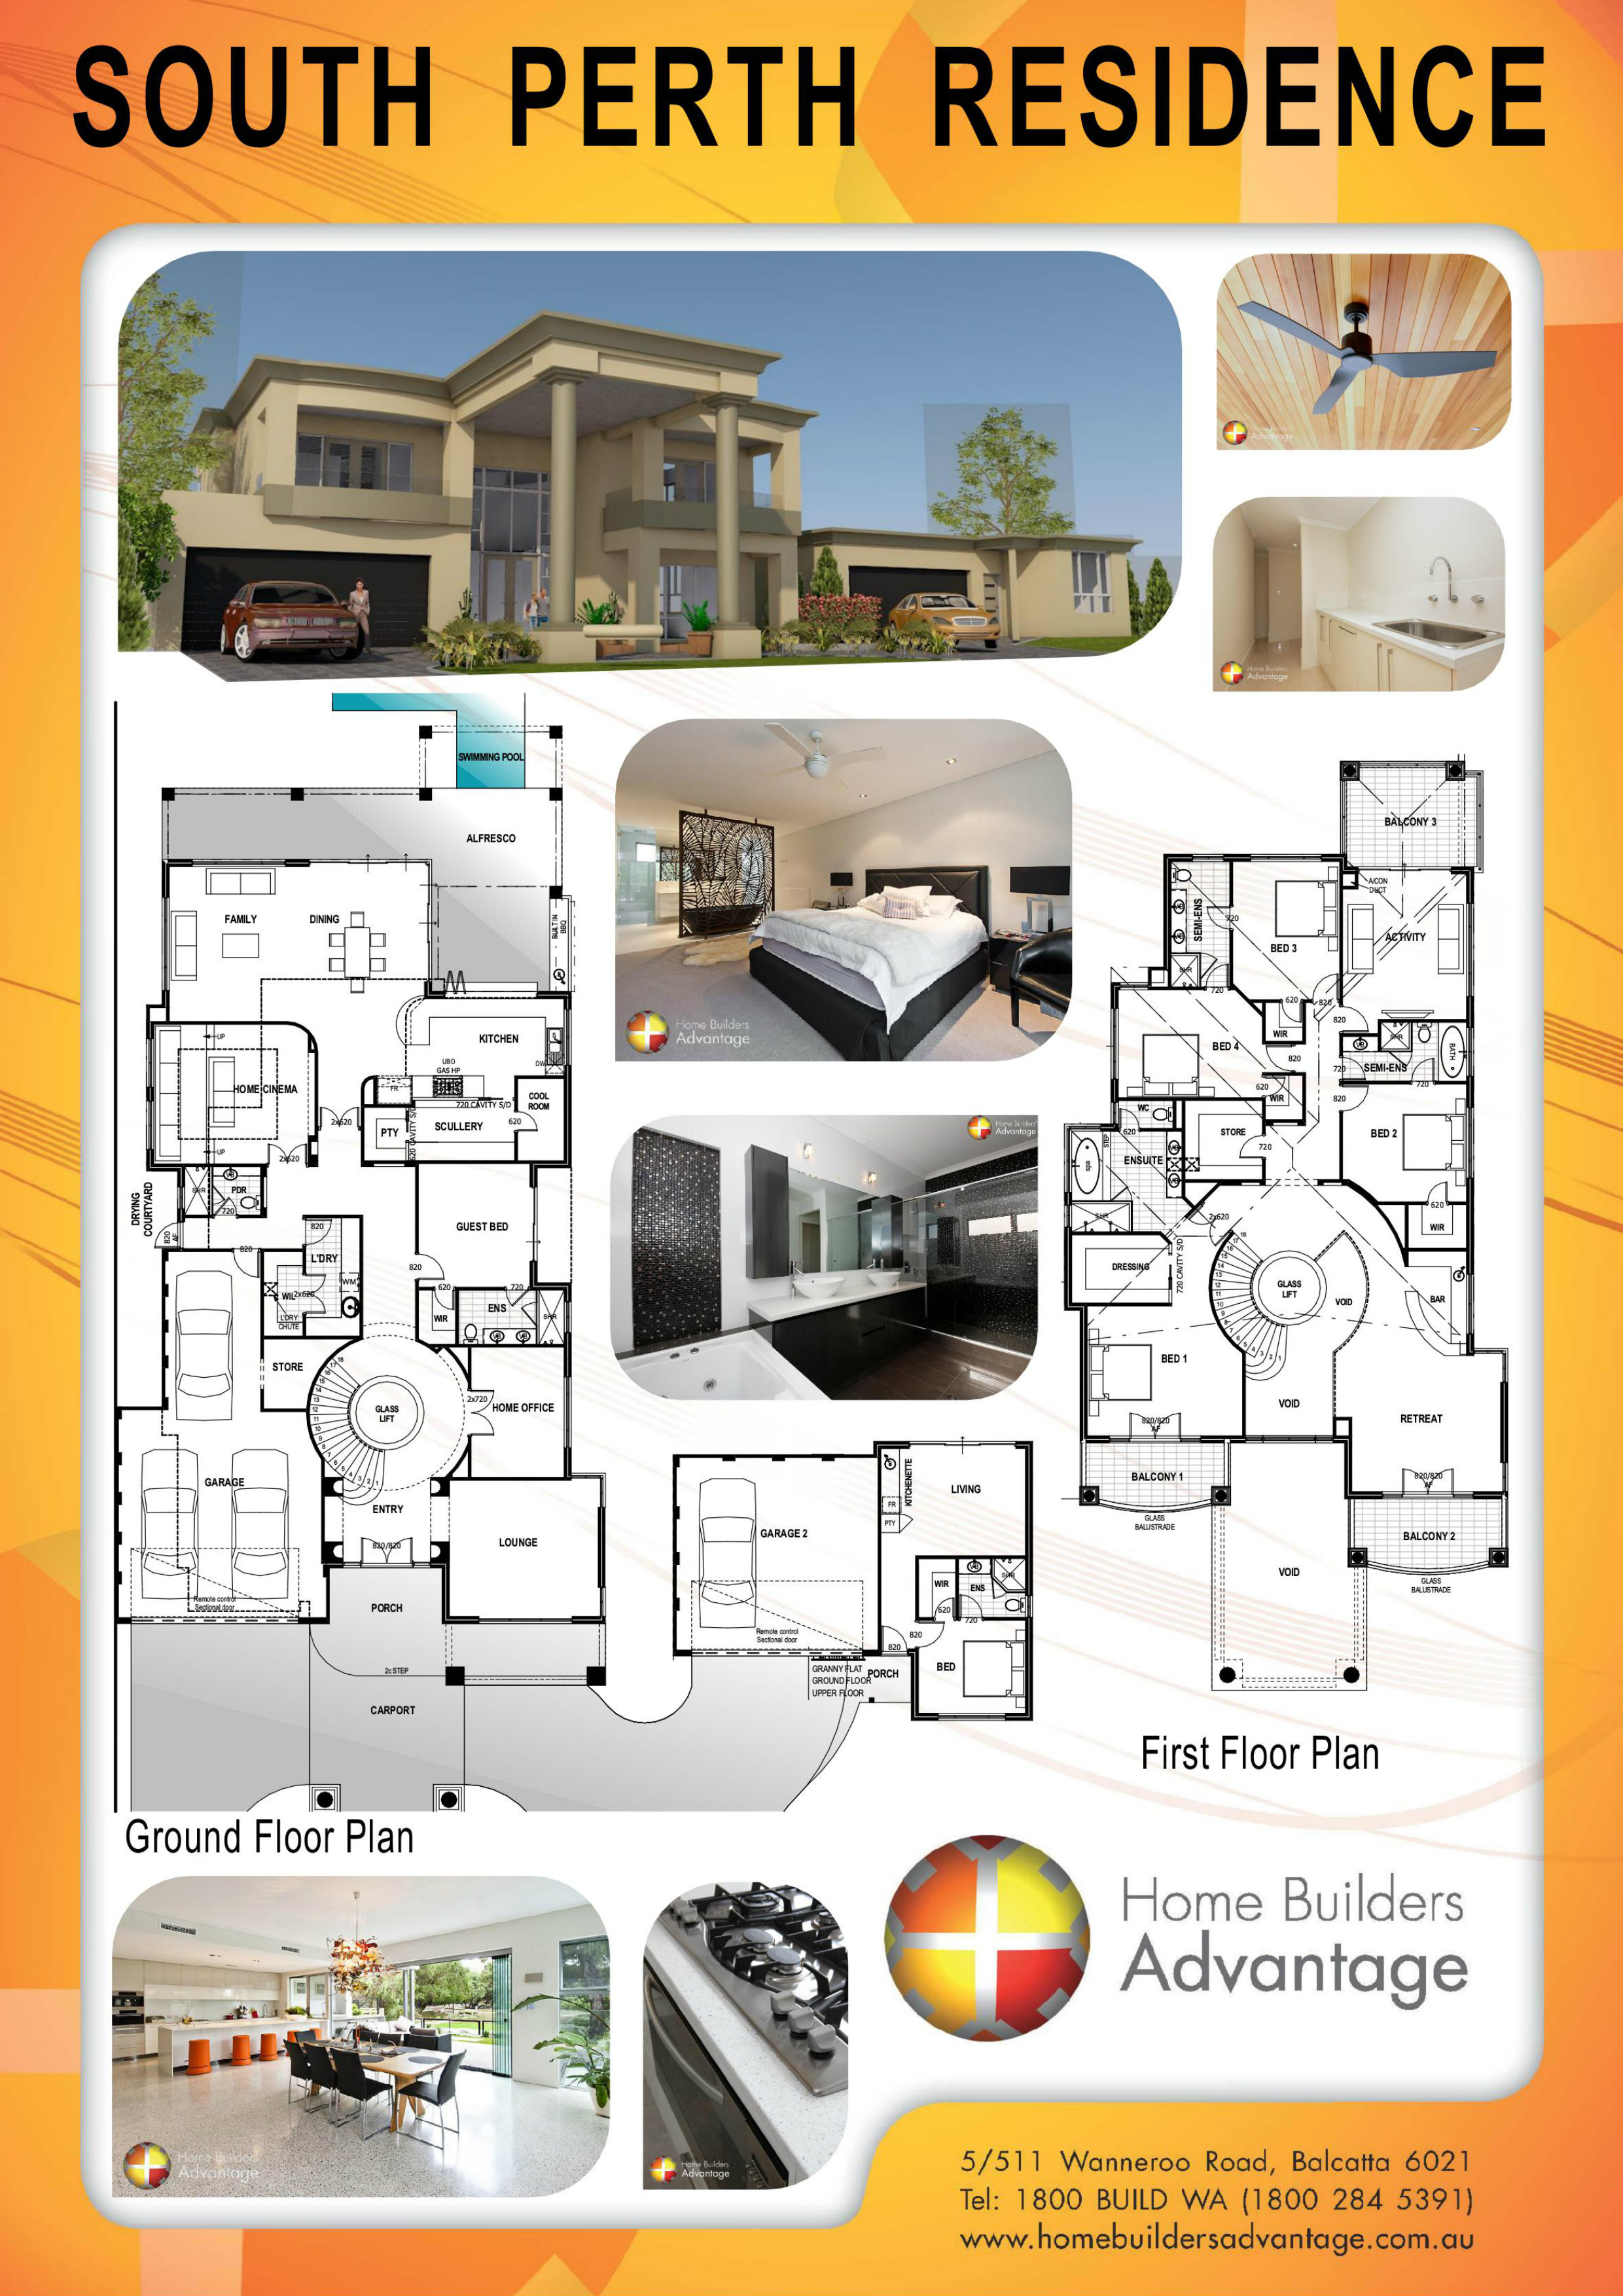 Home builders advantage deluxe two storey home with glass for Builders advantage